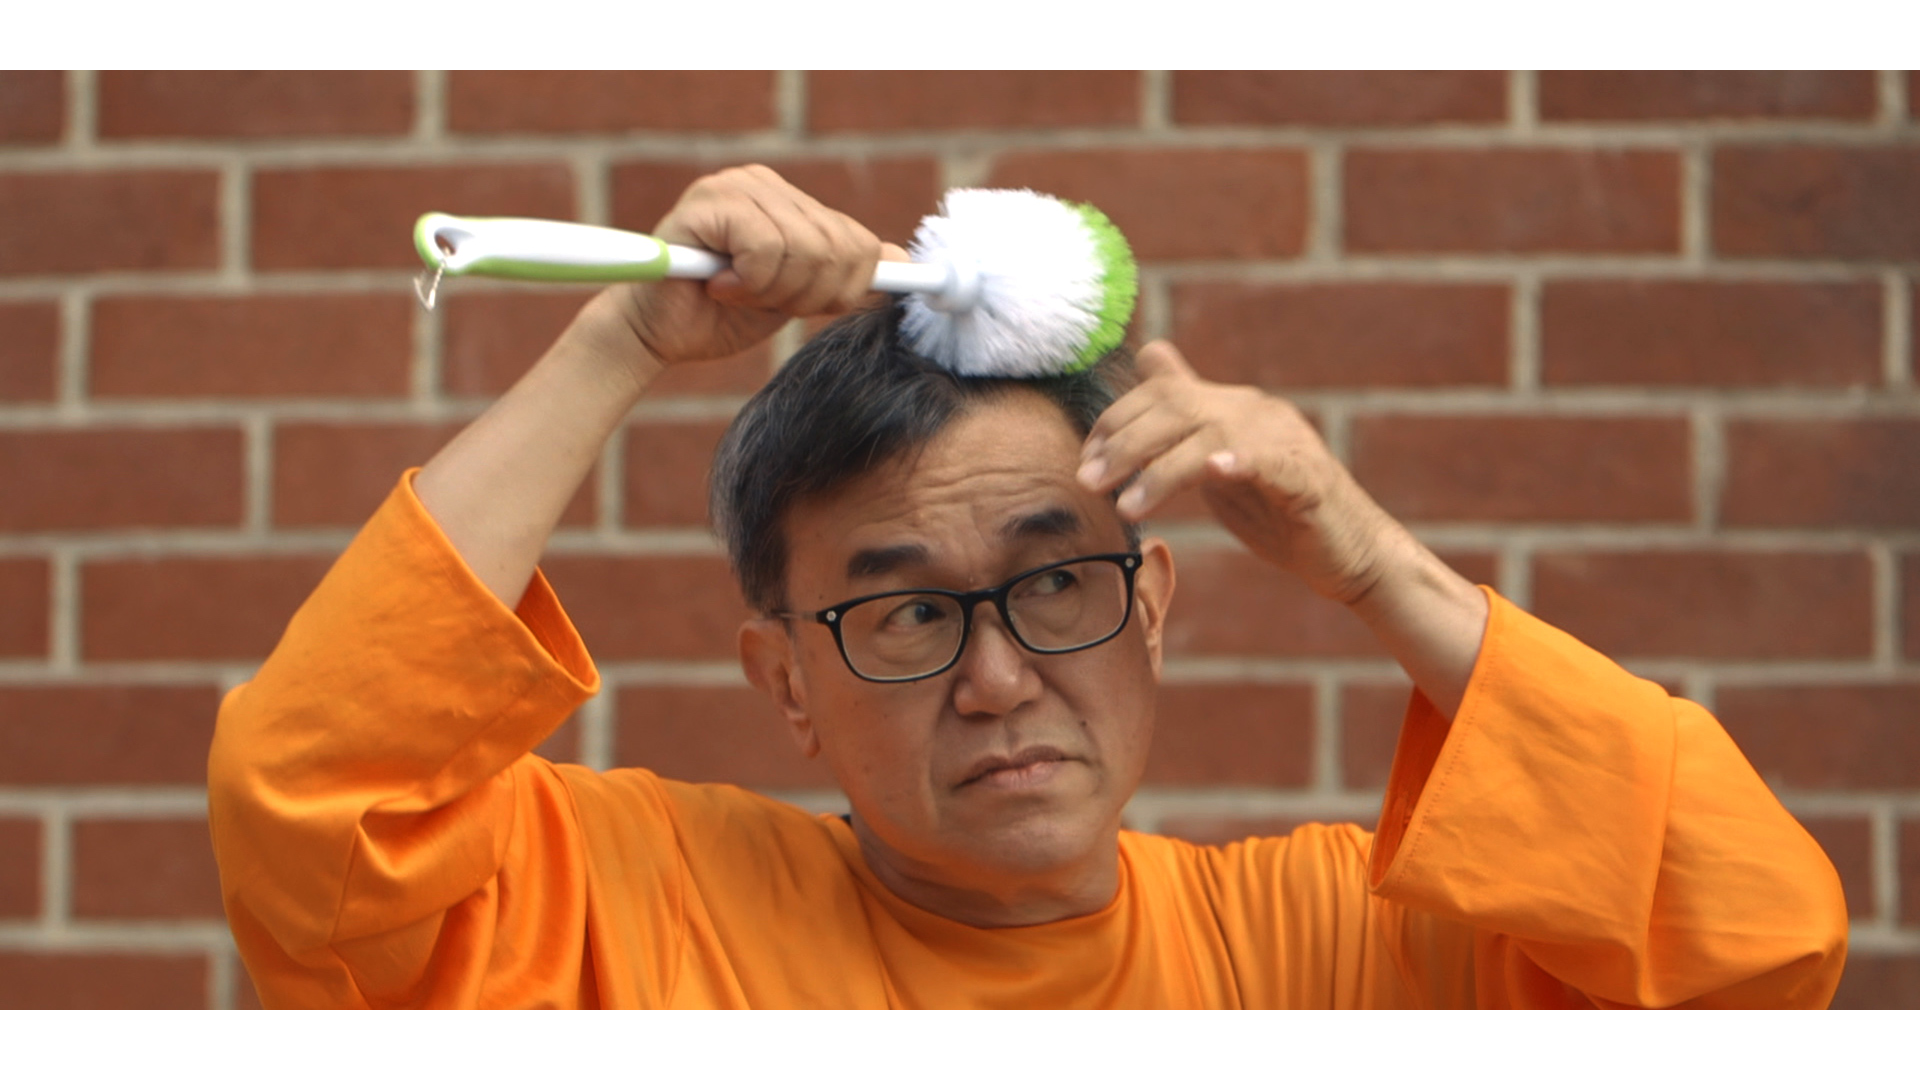 Jack Sim [Mr. Toilet] brushes his hair with a toilet wand.